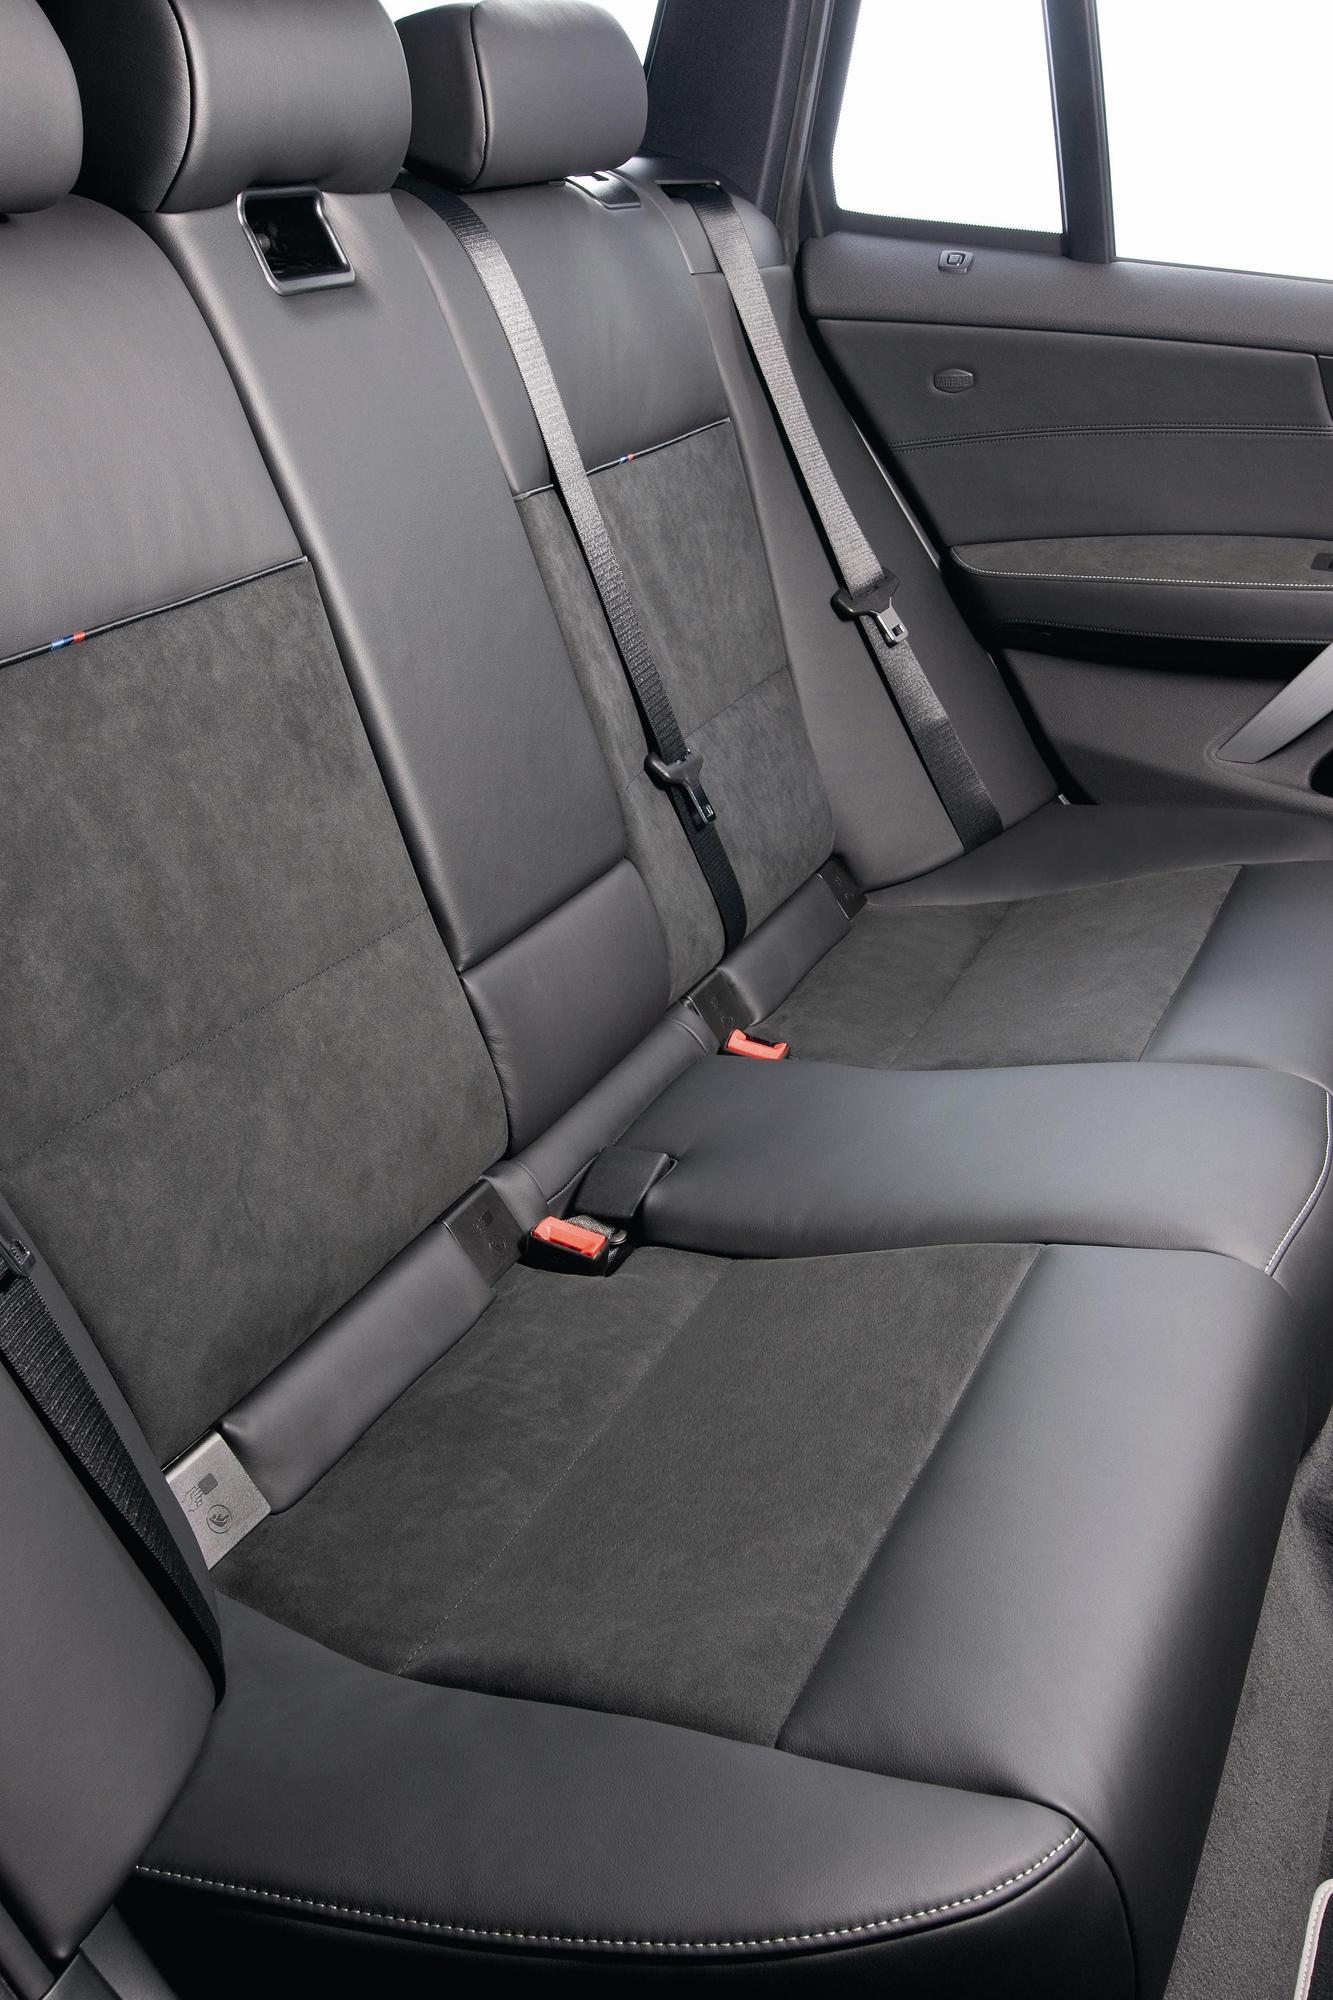 BMW X3 Limited Sport Edition - Picture 14409